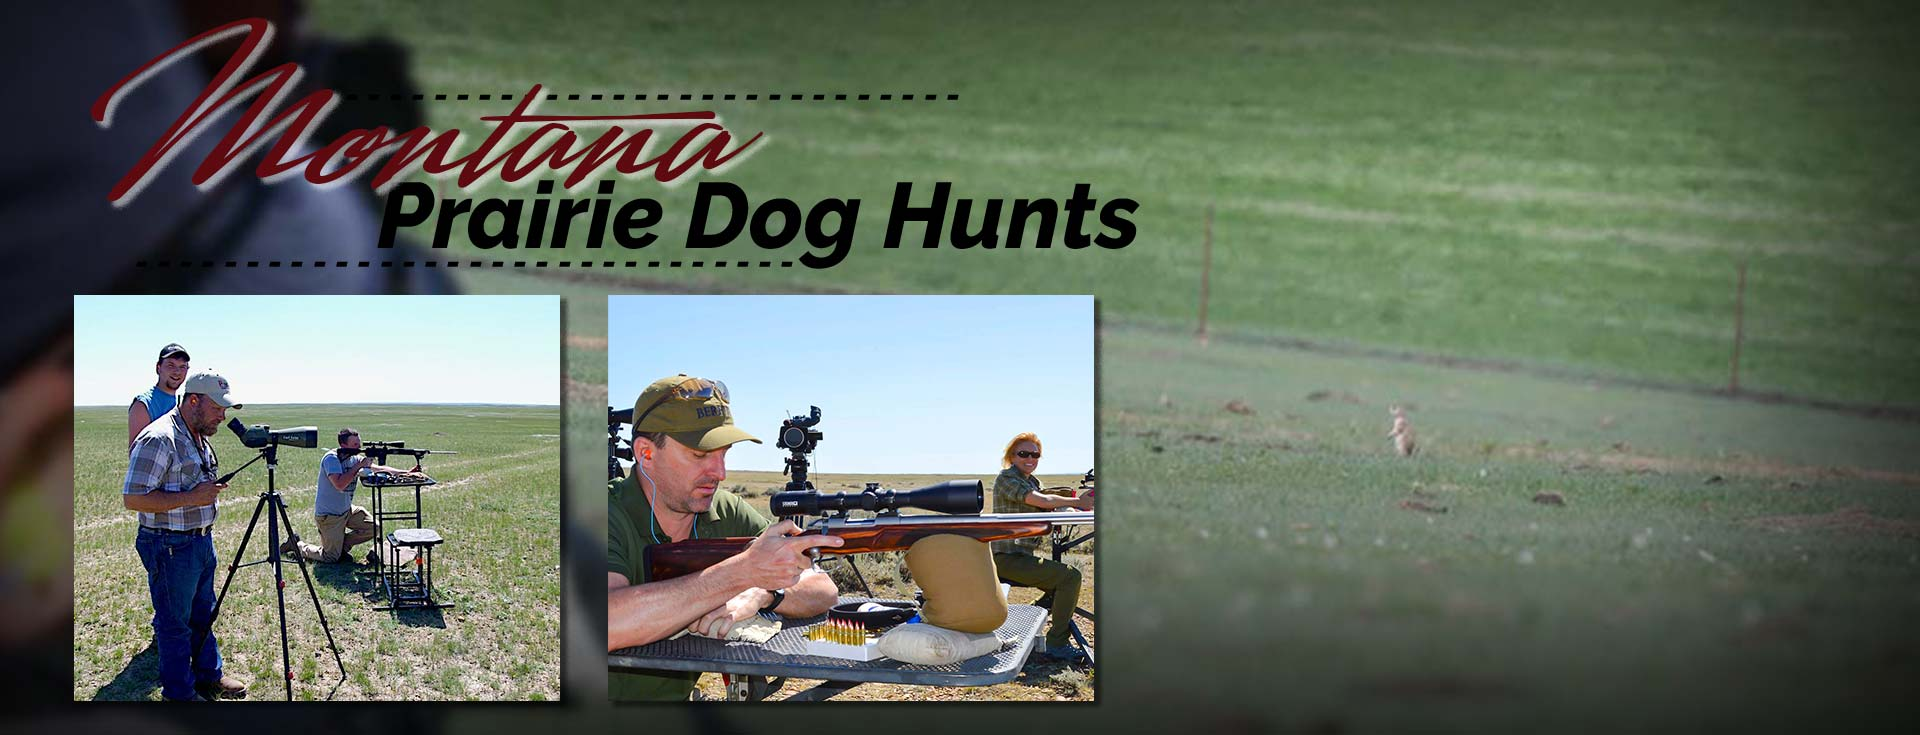 Guided prairie dog hunts with Redbone Outfitting